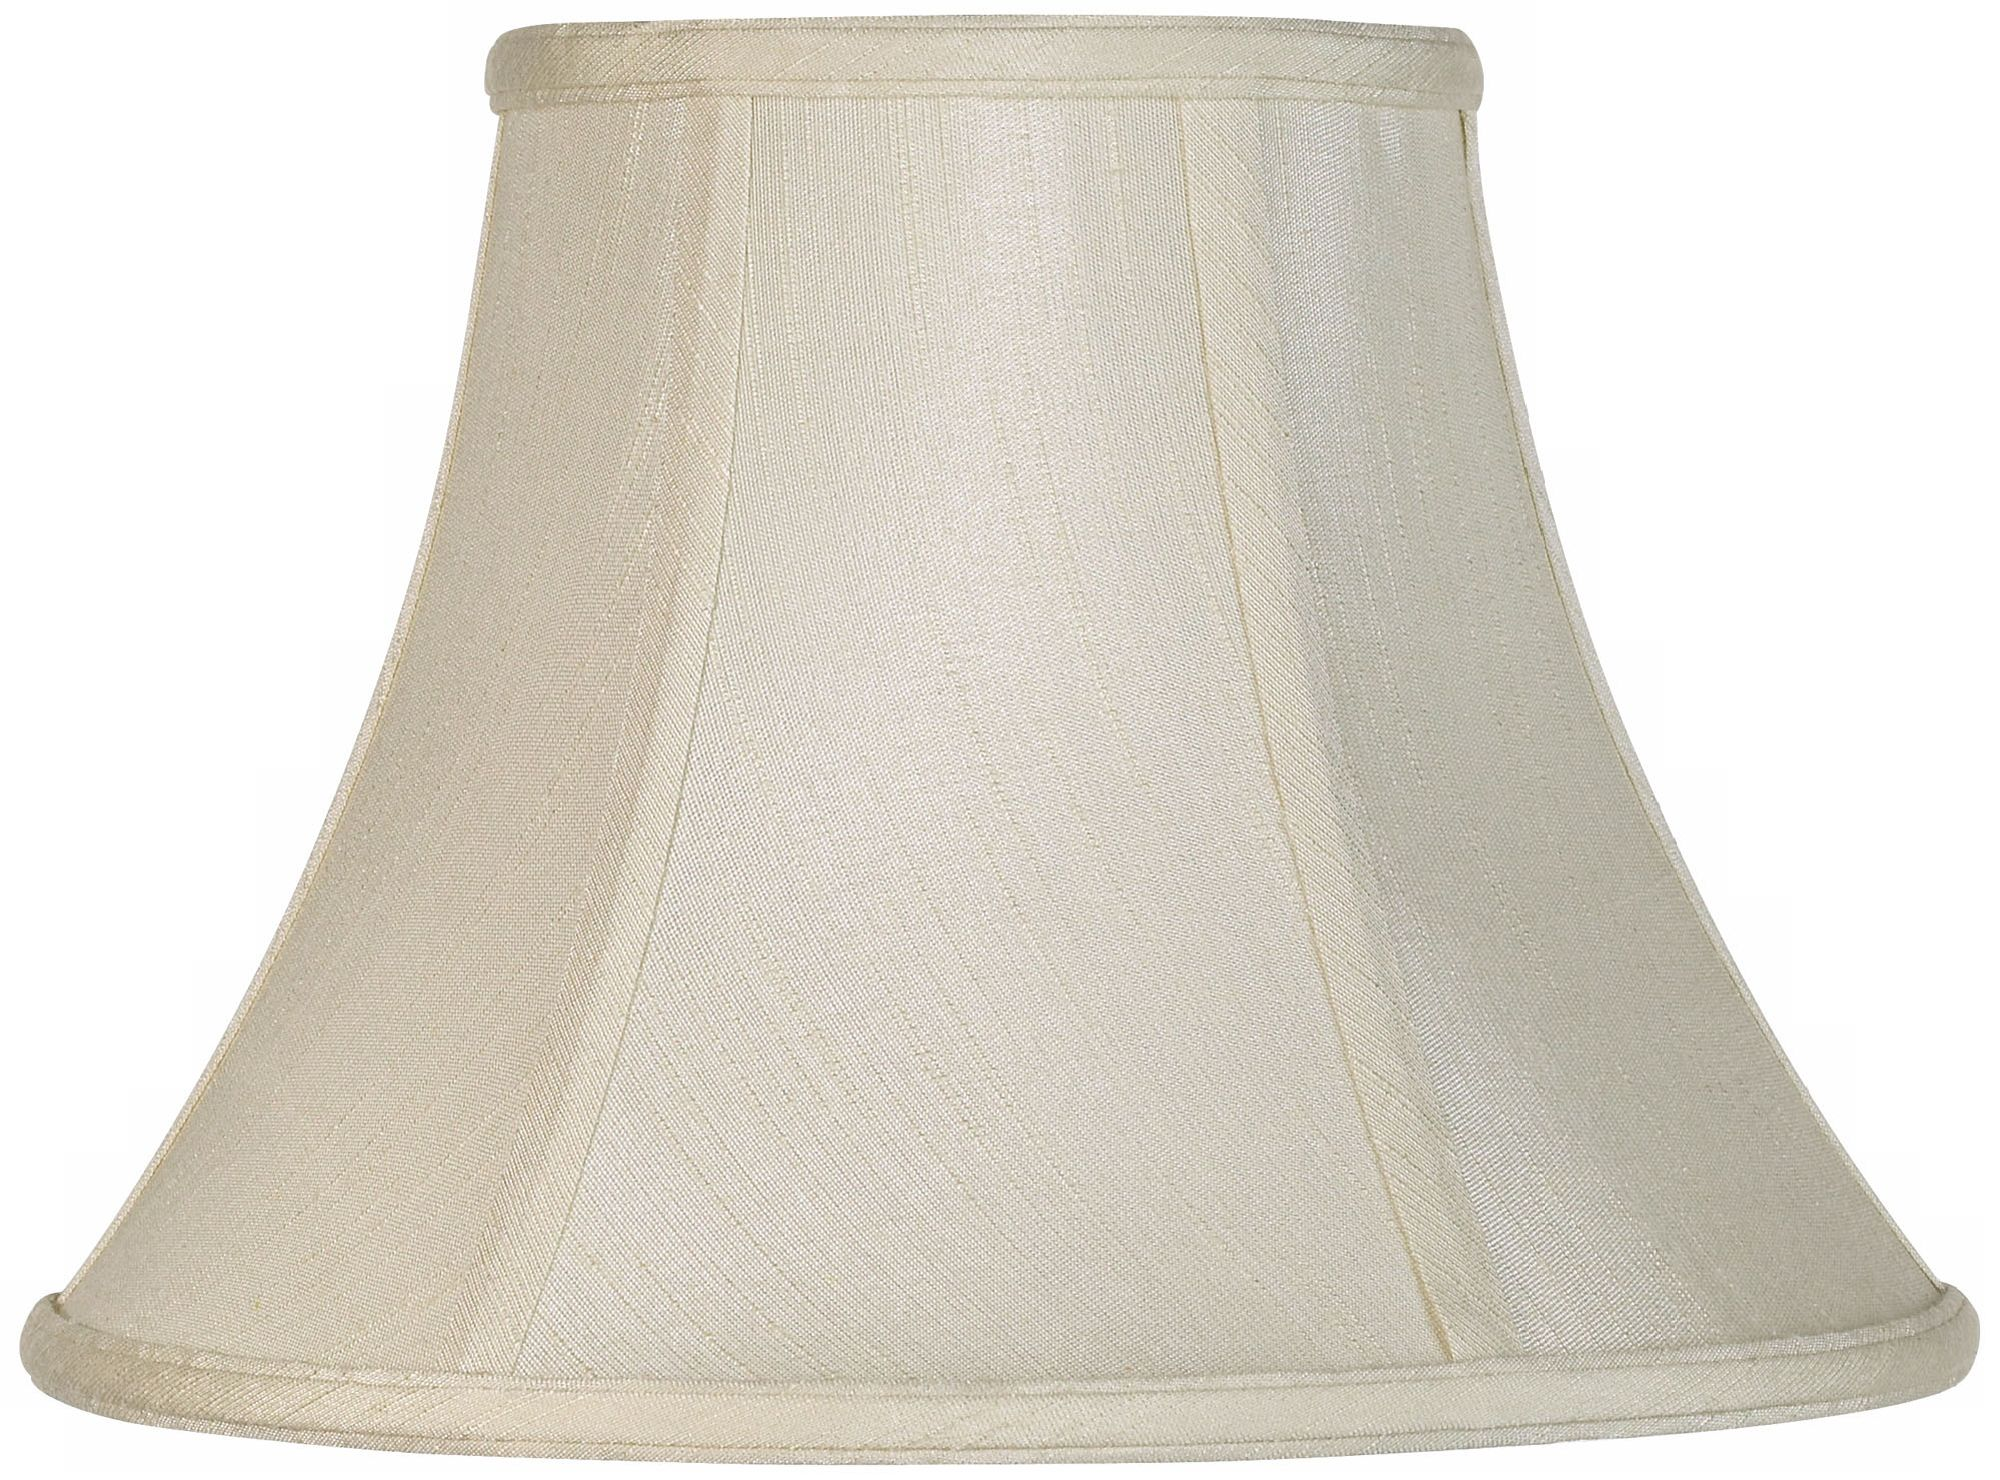 Marvelous Imperial Collection™ Creme Bell Lamp Shade 6x12x9 (Spider)